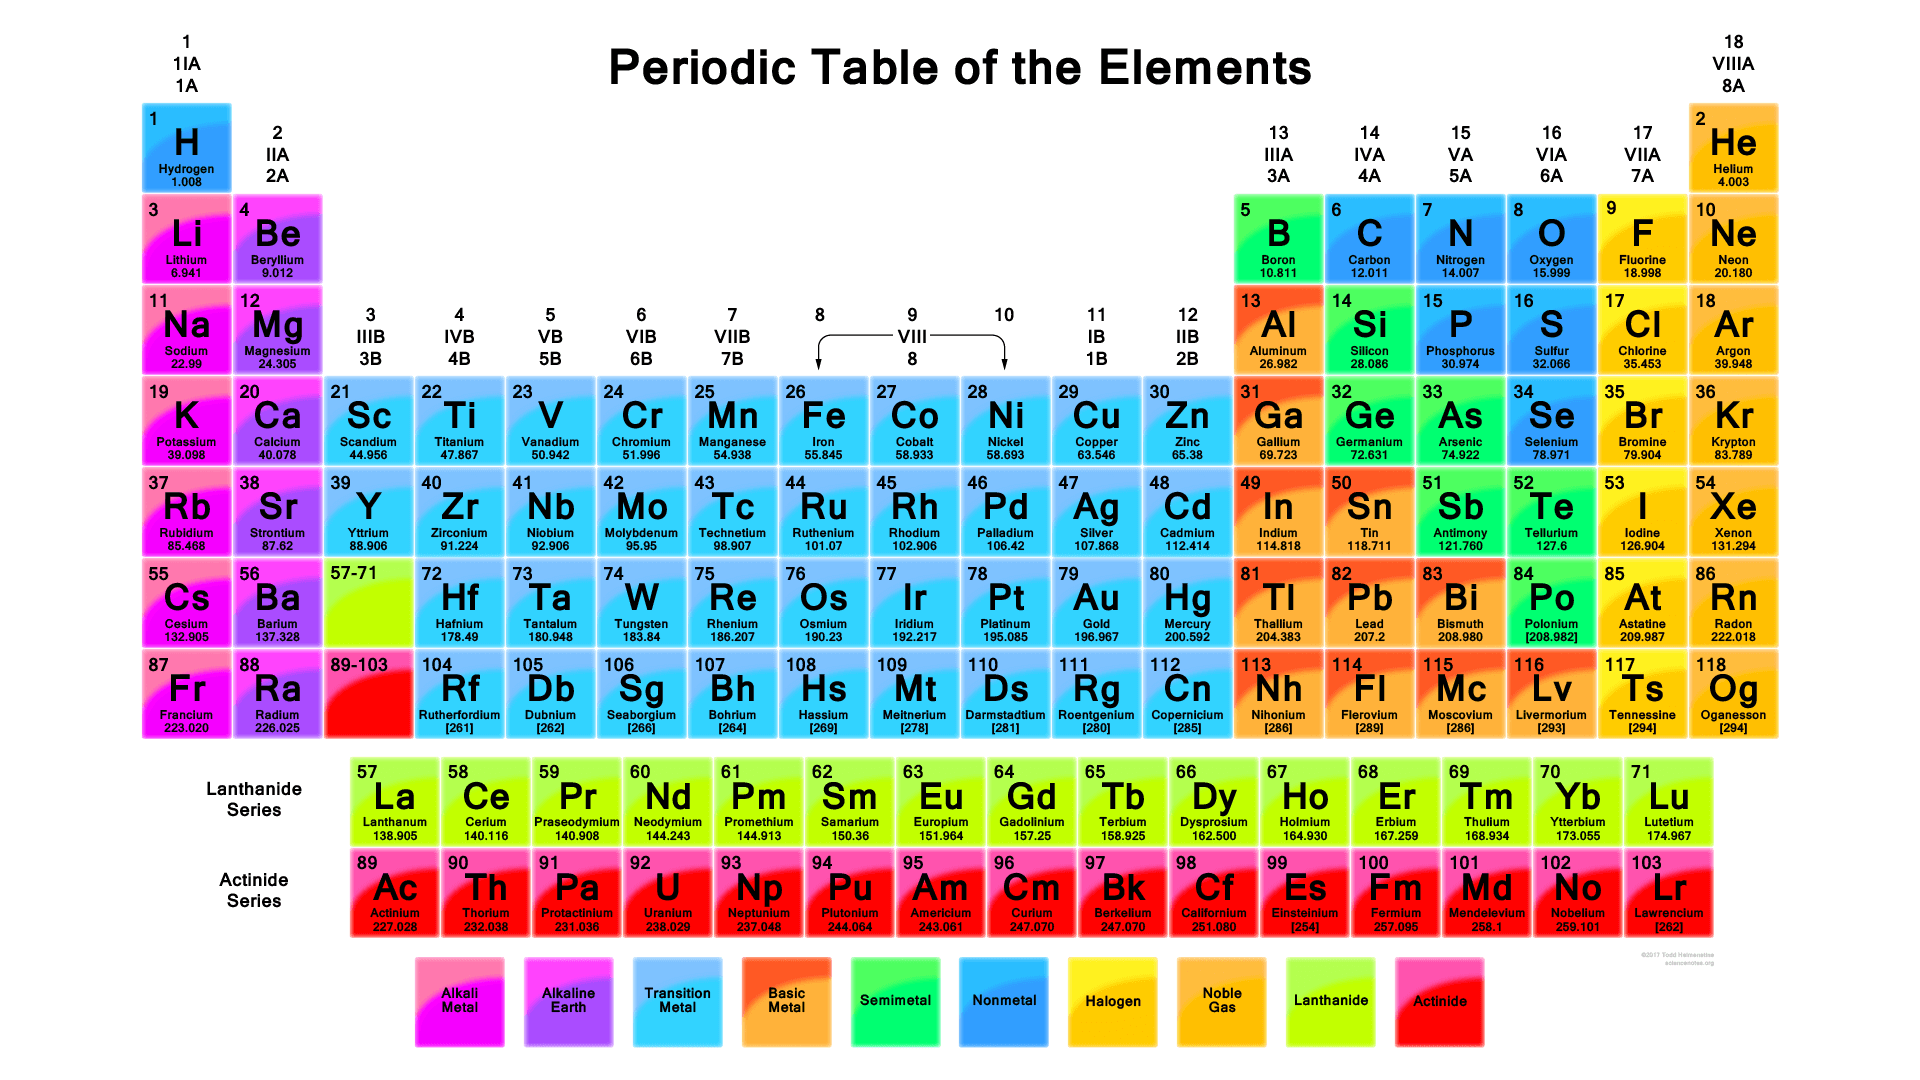 Periodic table pdf 2018 edition with 118 elements vibrant periodic table with 118 elements urtaz Images